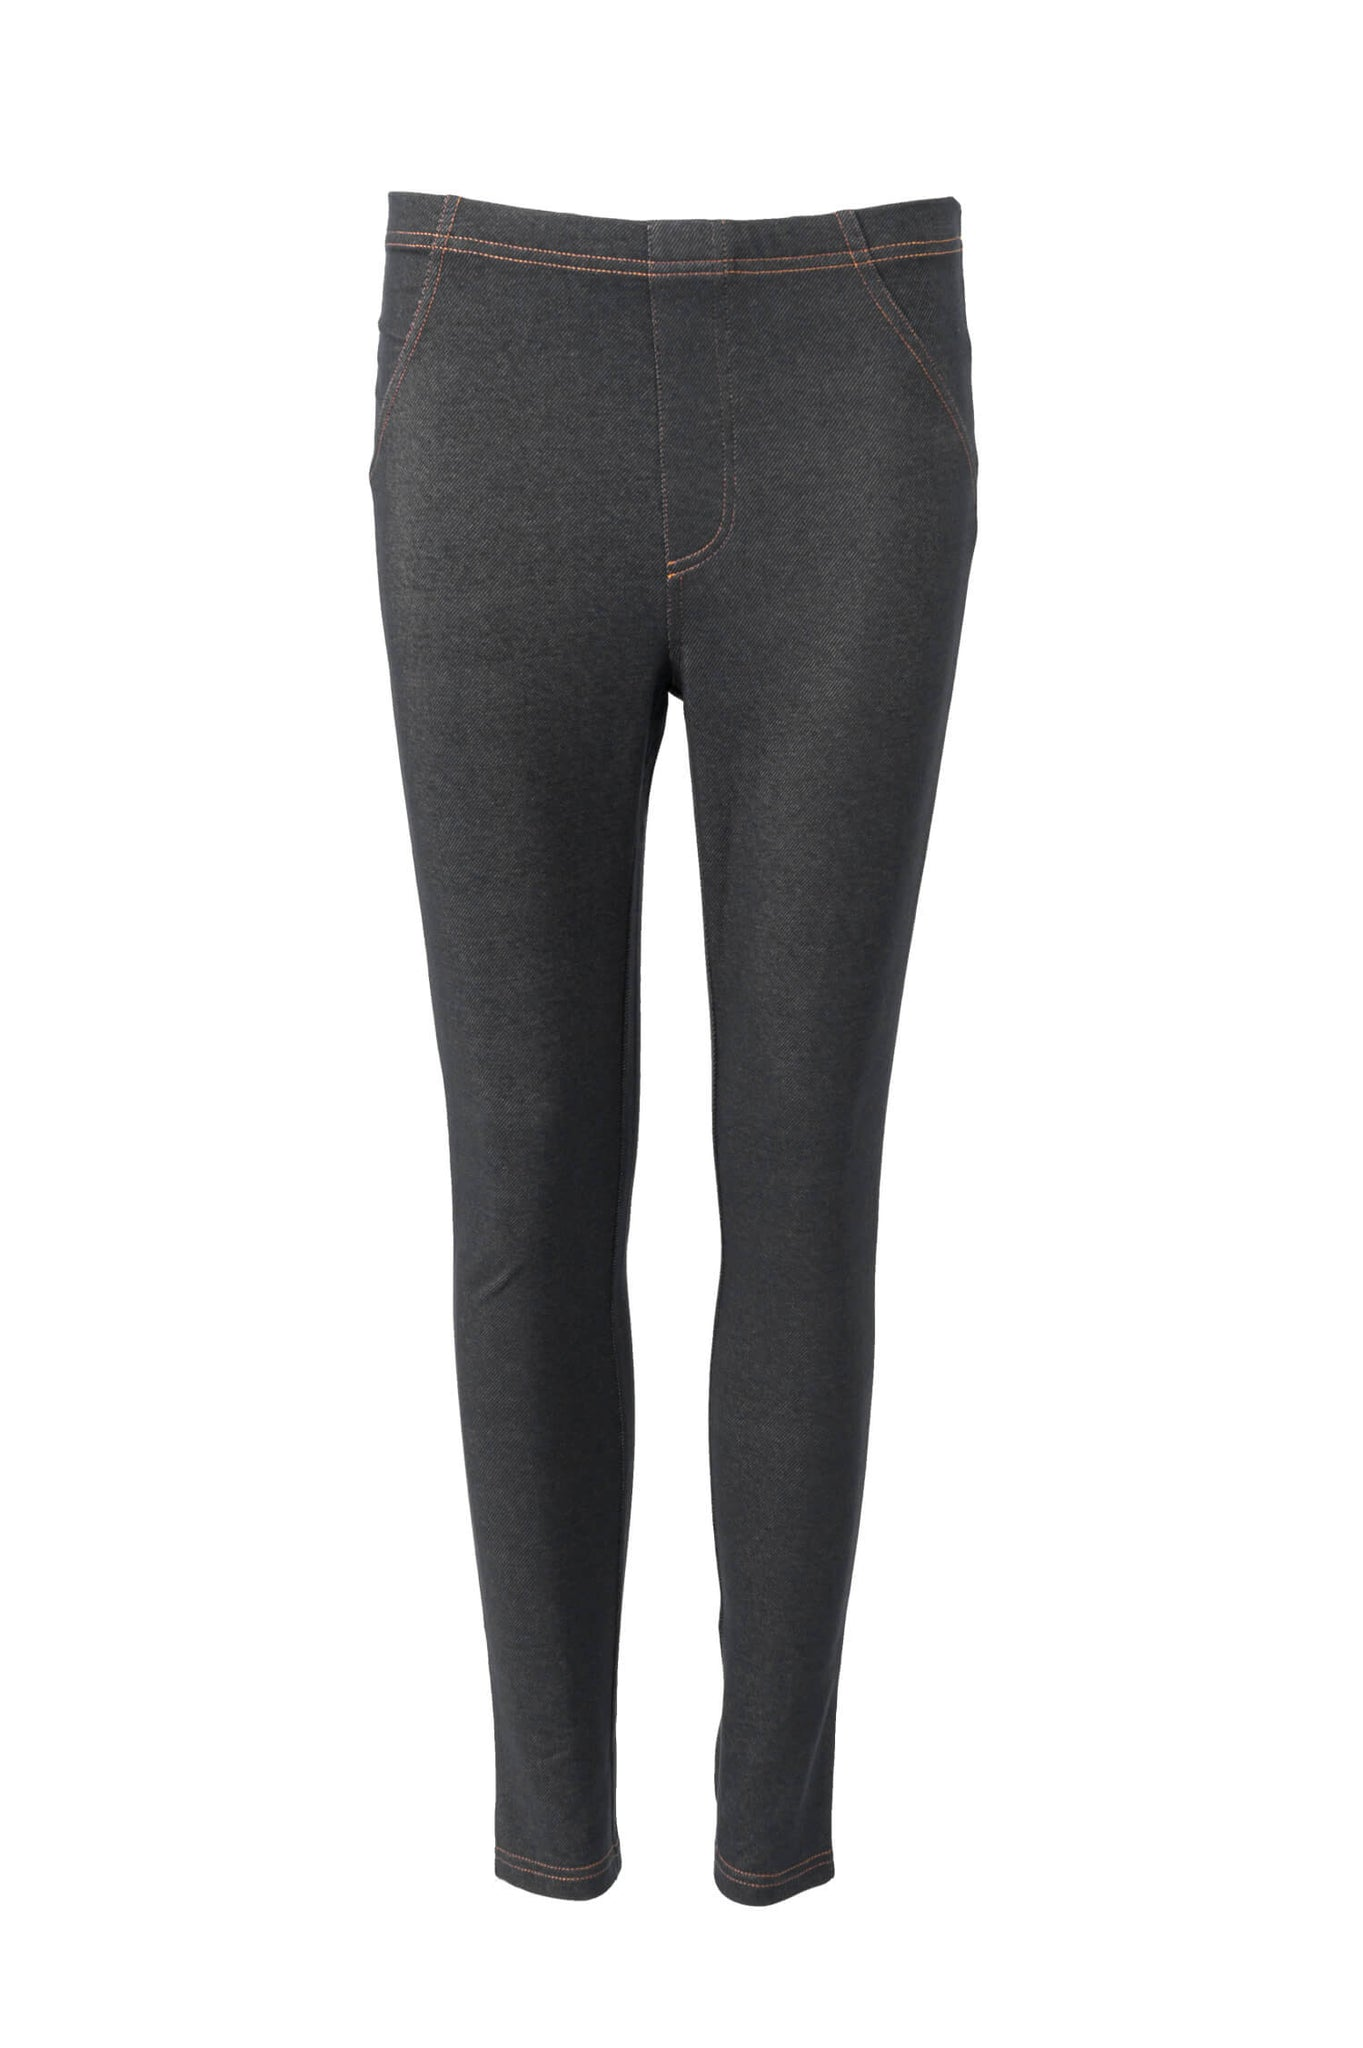 Ladies Jeggings in black